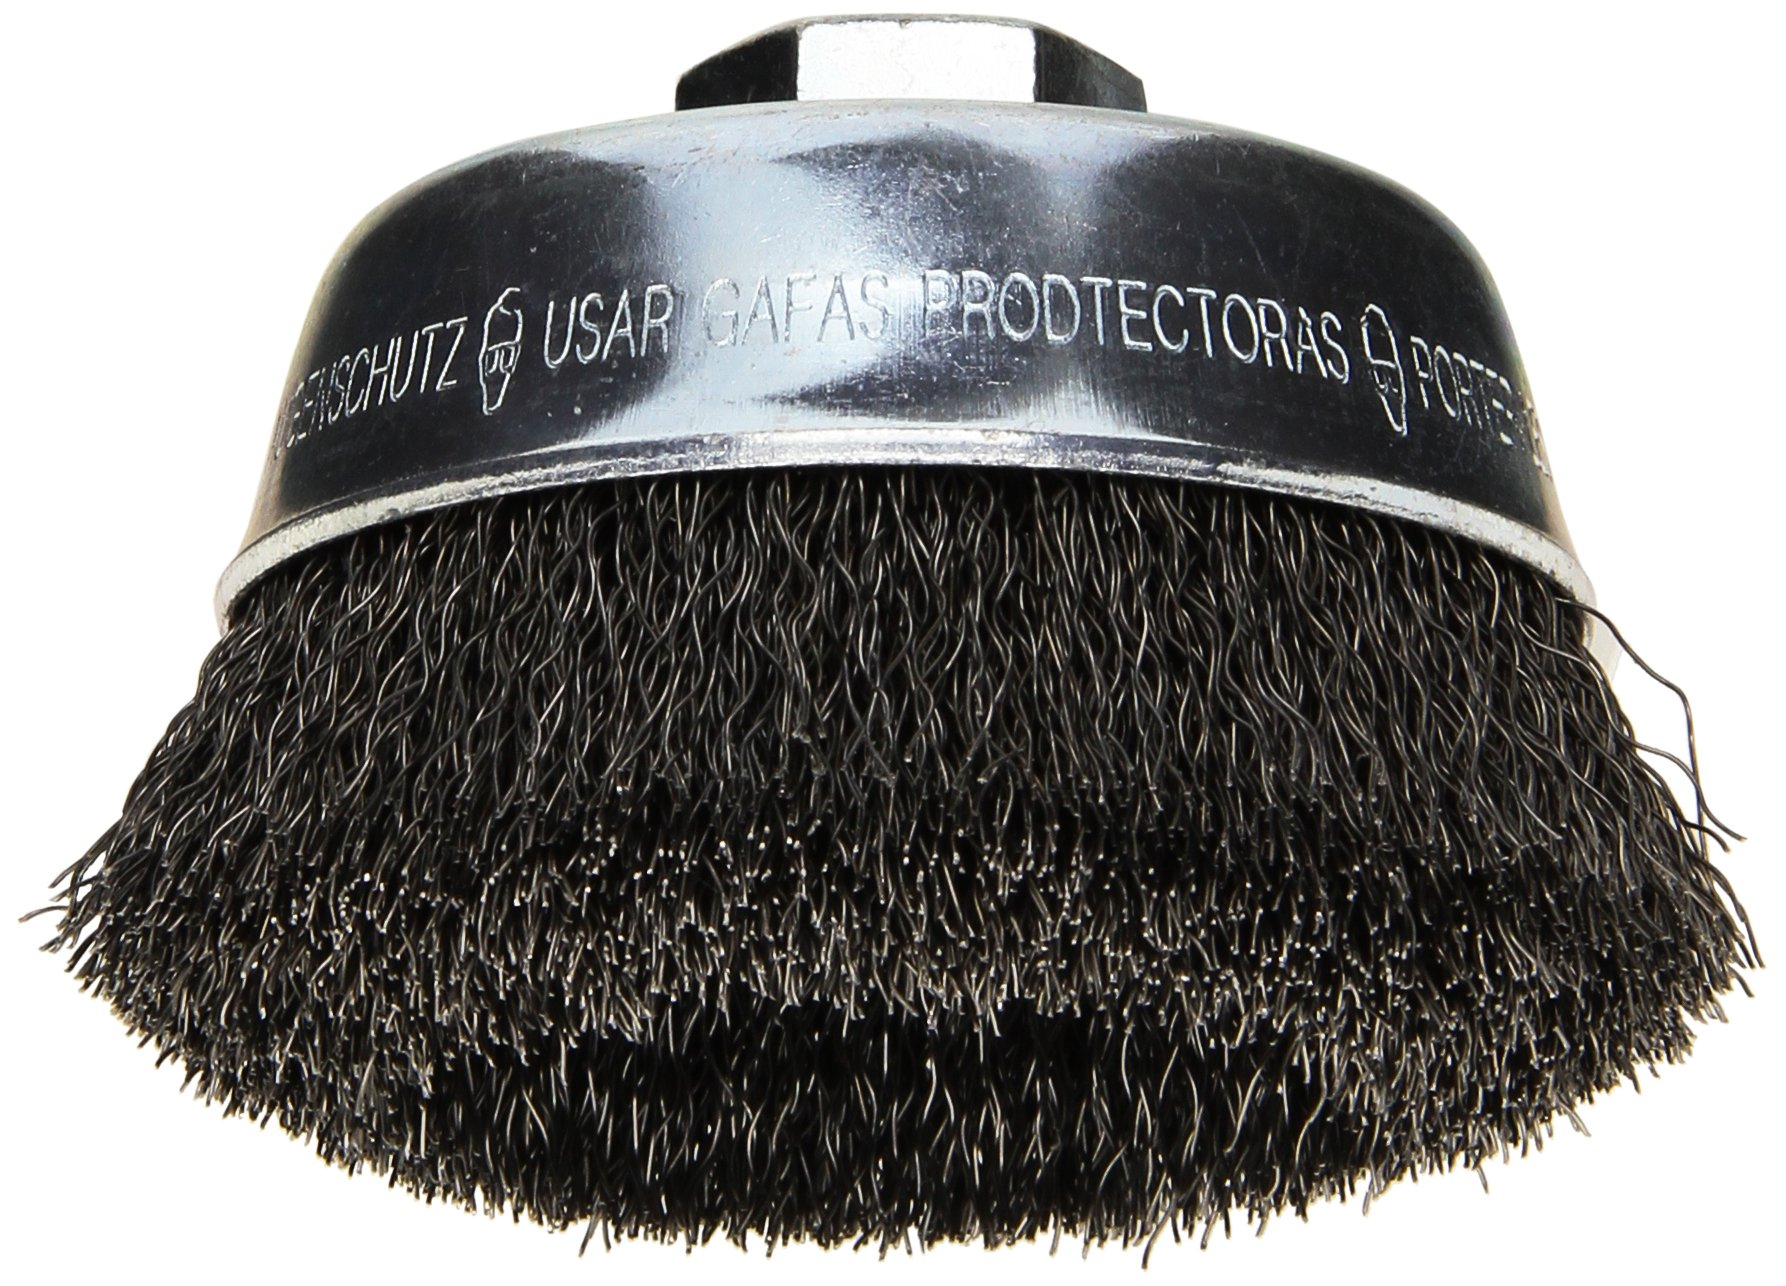 Bosch WB524 3 1/2-Inch Crimped Carbon Steel Cup Brush, 5/8-Inch x 11 Thread Arbor